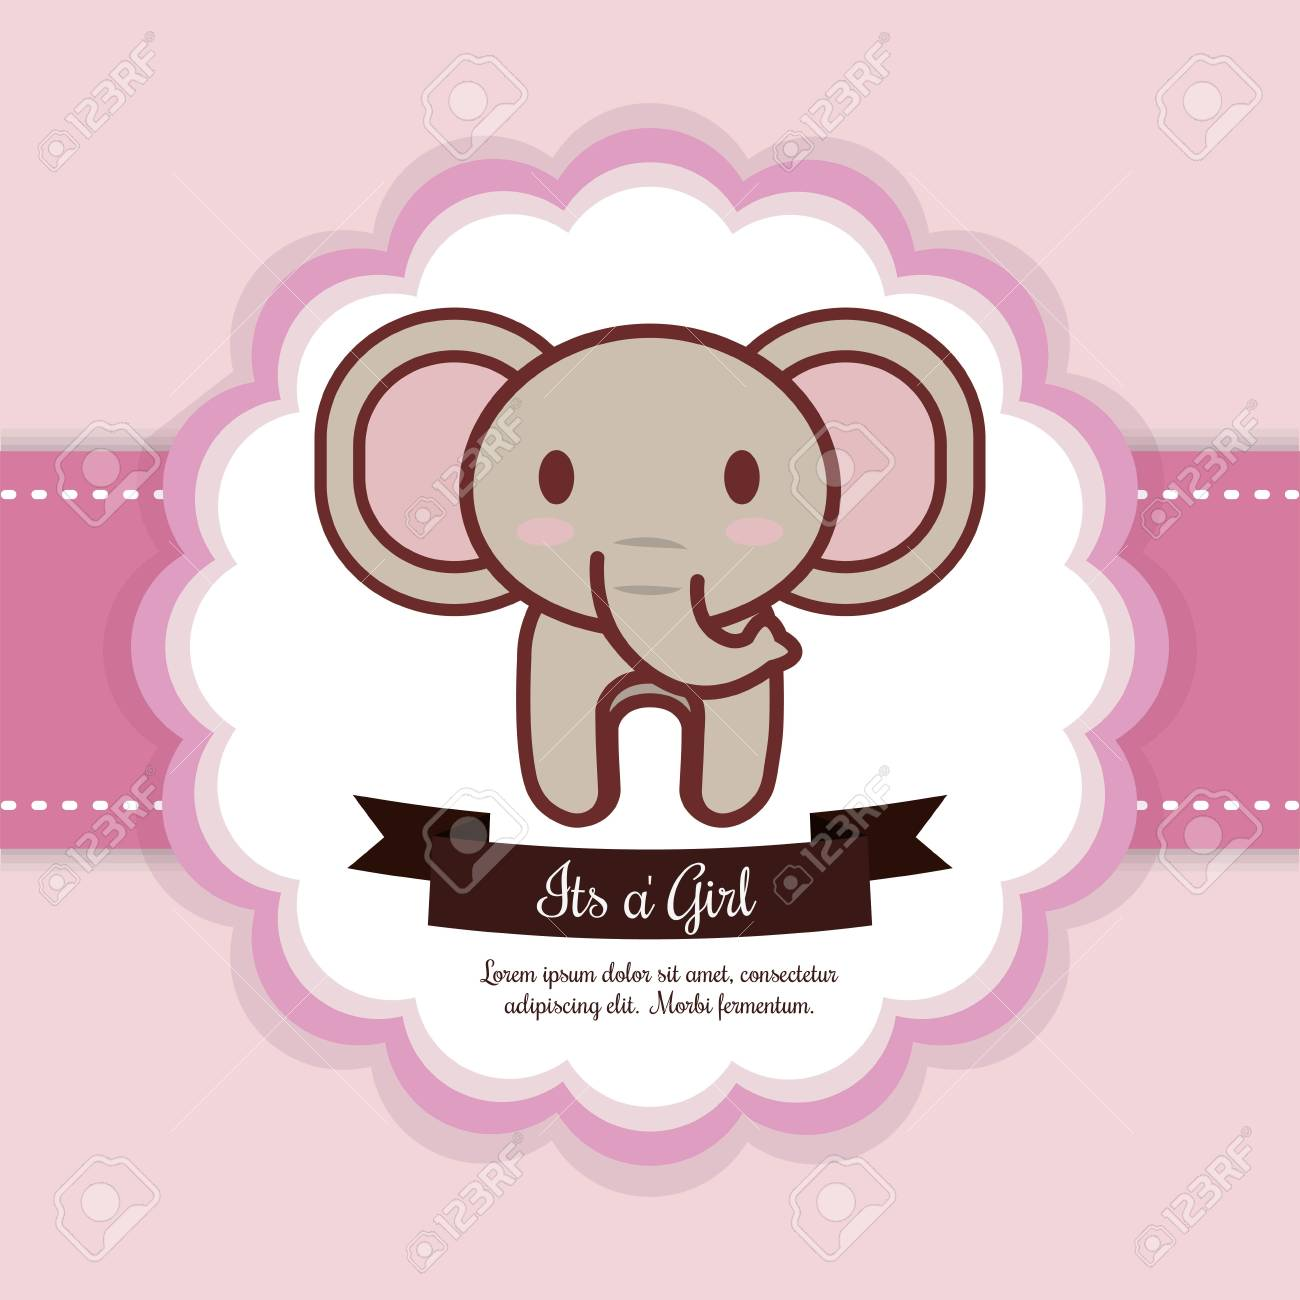 Baby Shower Invitation With Elephant Icon Colorful Design Vector